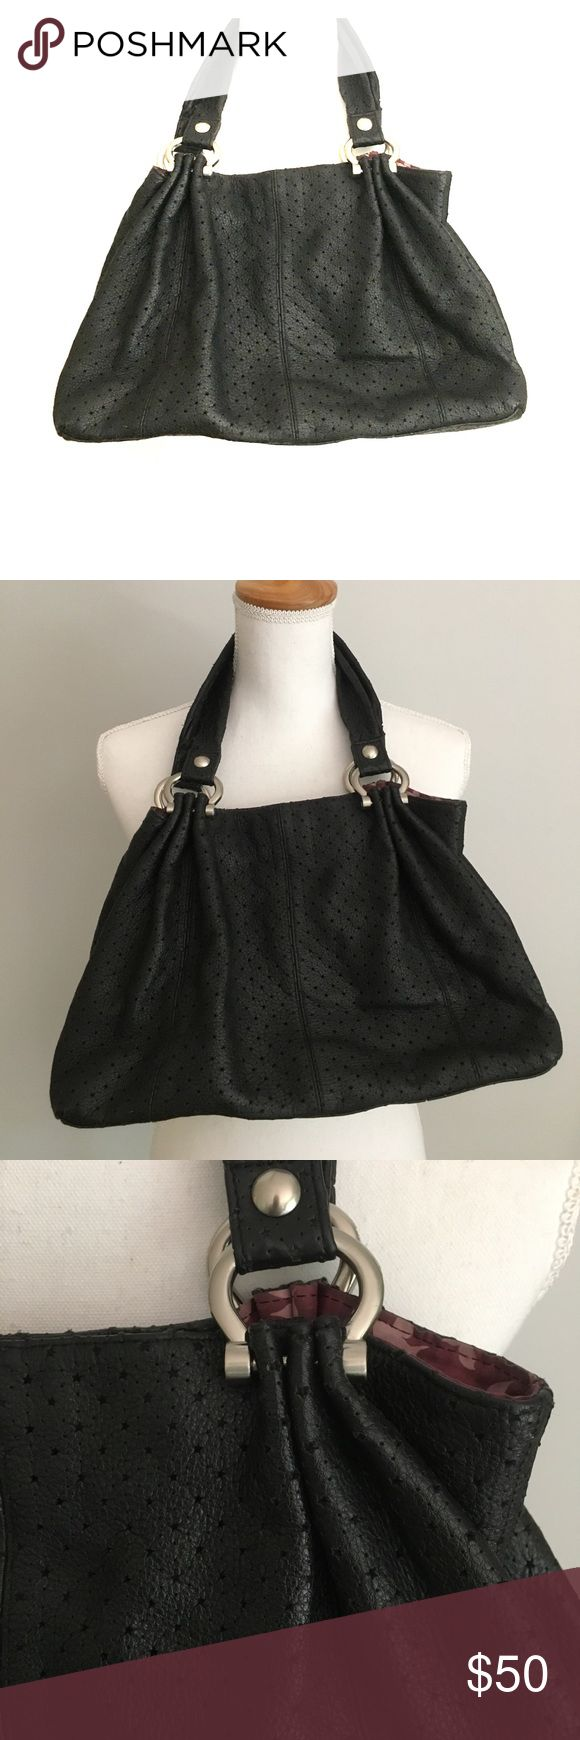 Gap purse Black leather purse. Star cut out detail patterned on bag. Two straps with silver/metal detail. Zipper pocket on interior. Lined. GAP Bags Shoulder Bags